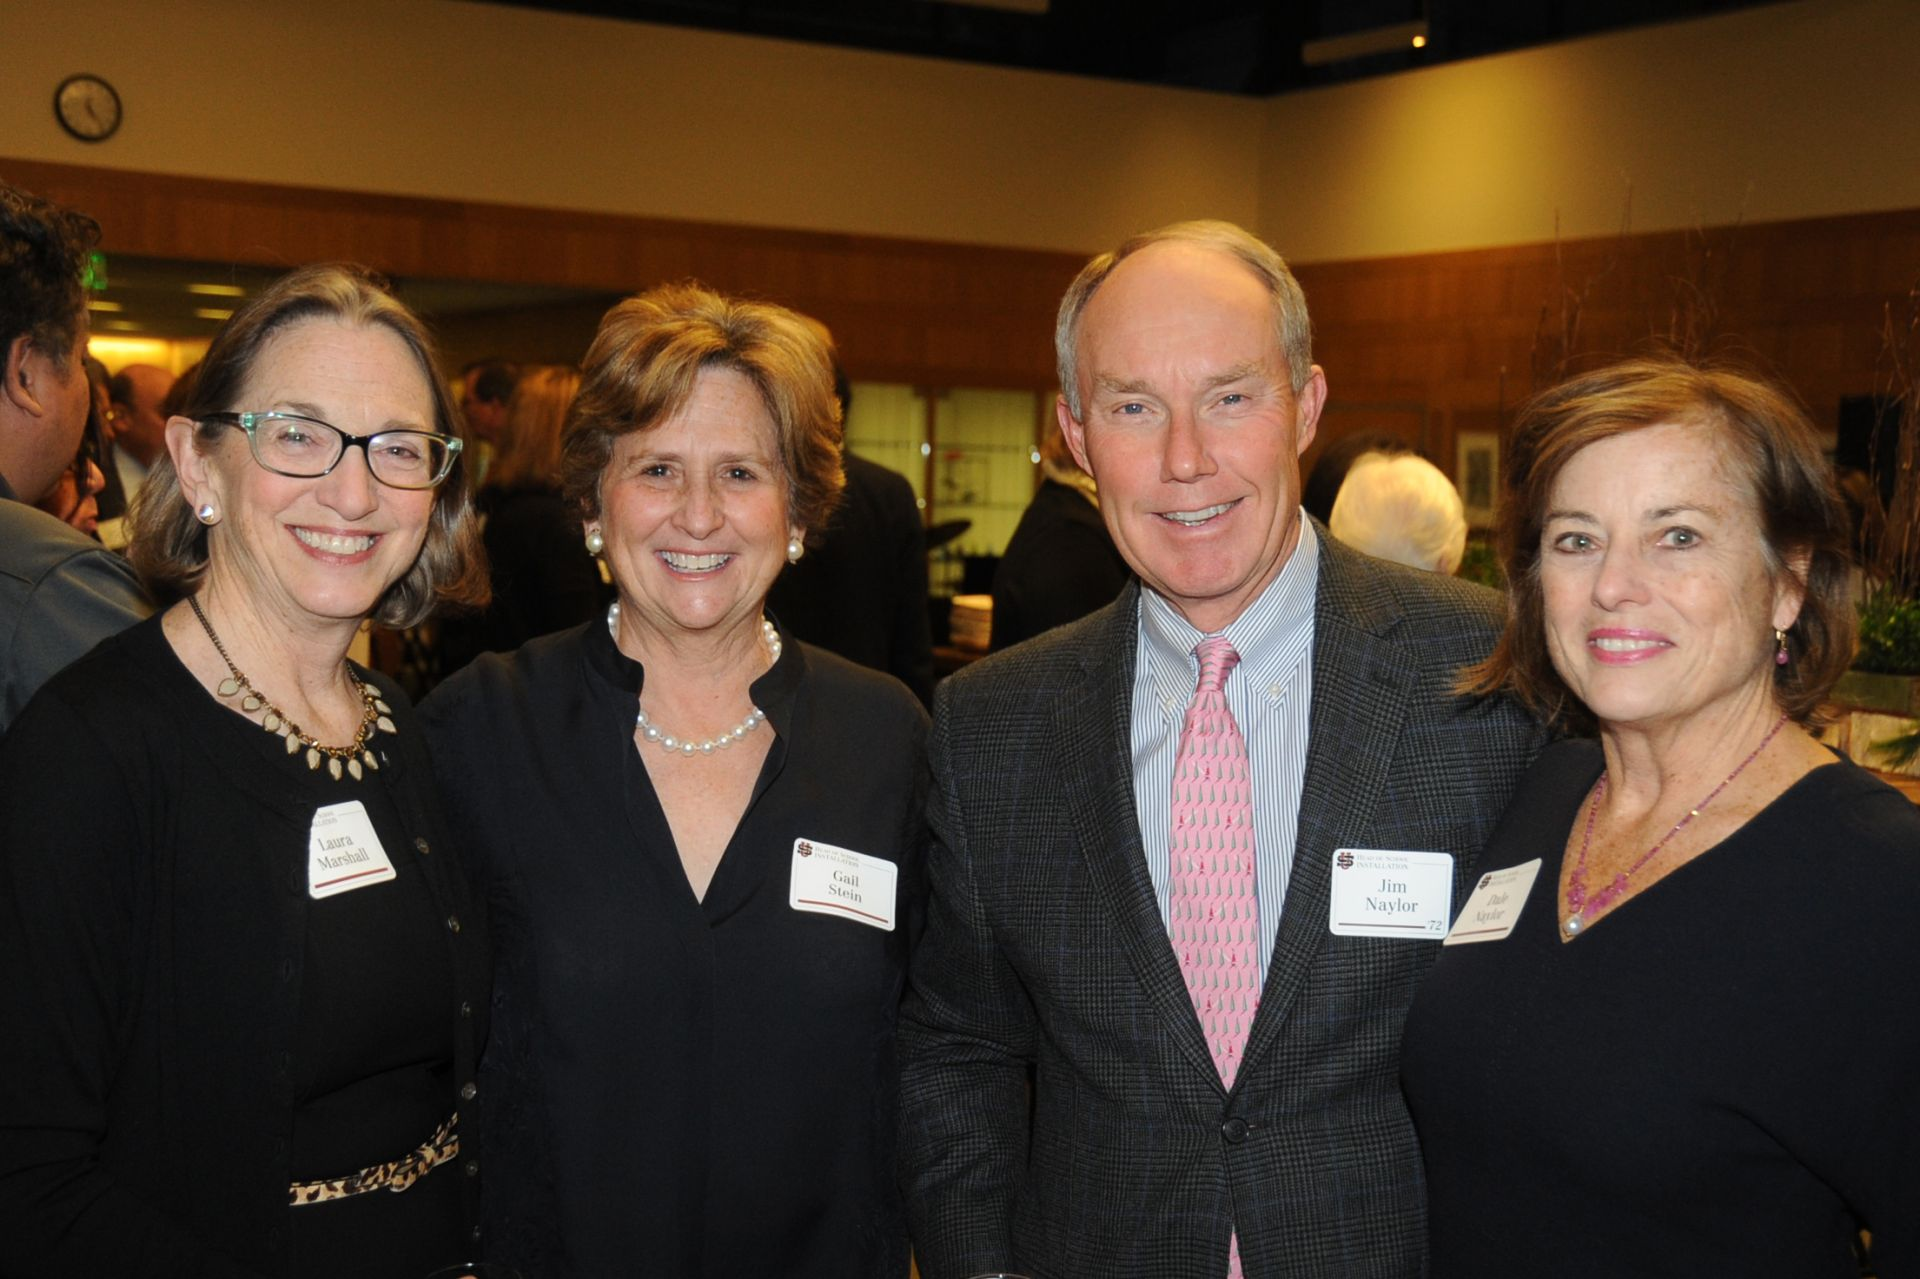 Alumni parent Laura Marshall, Lower School Director Gail Stein, Jim Naylor '72 and Trustee Dale Naylor